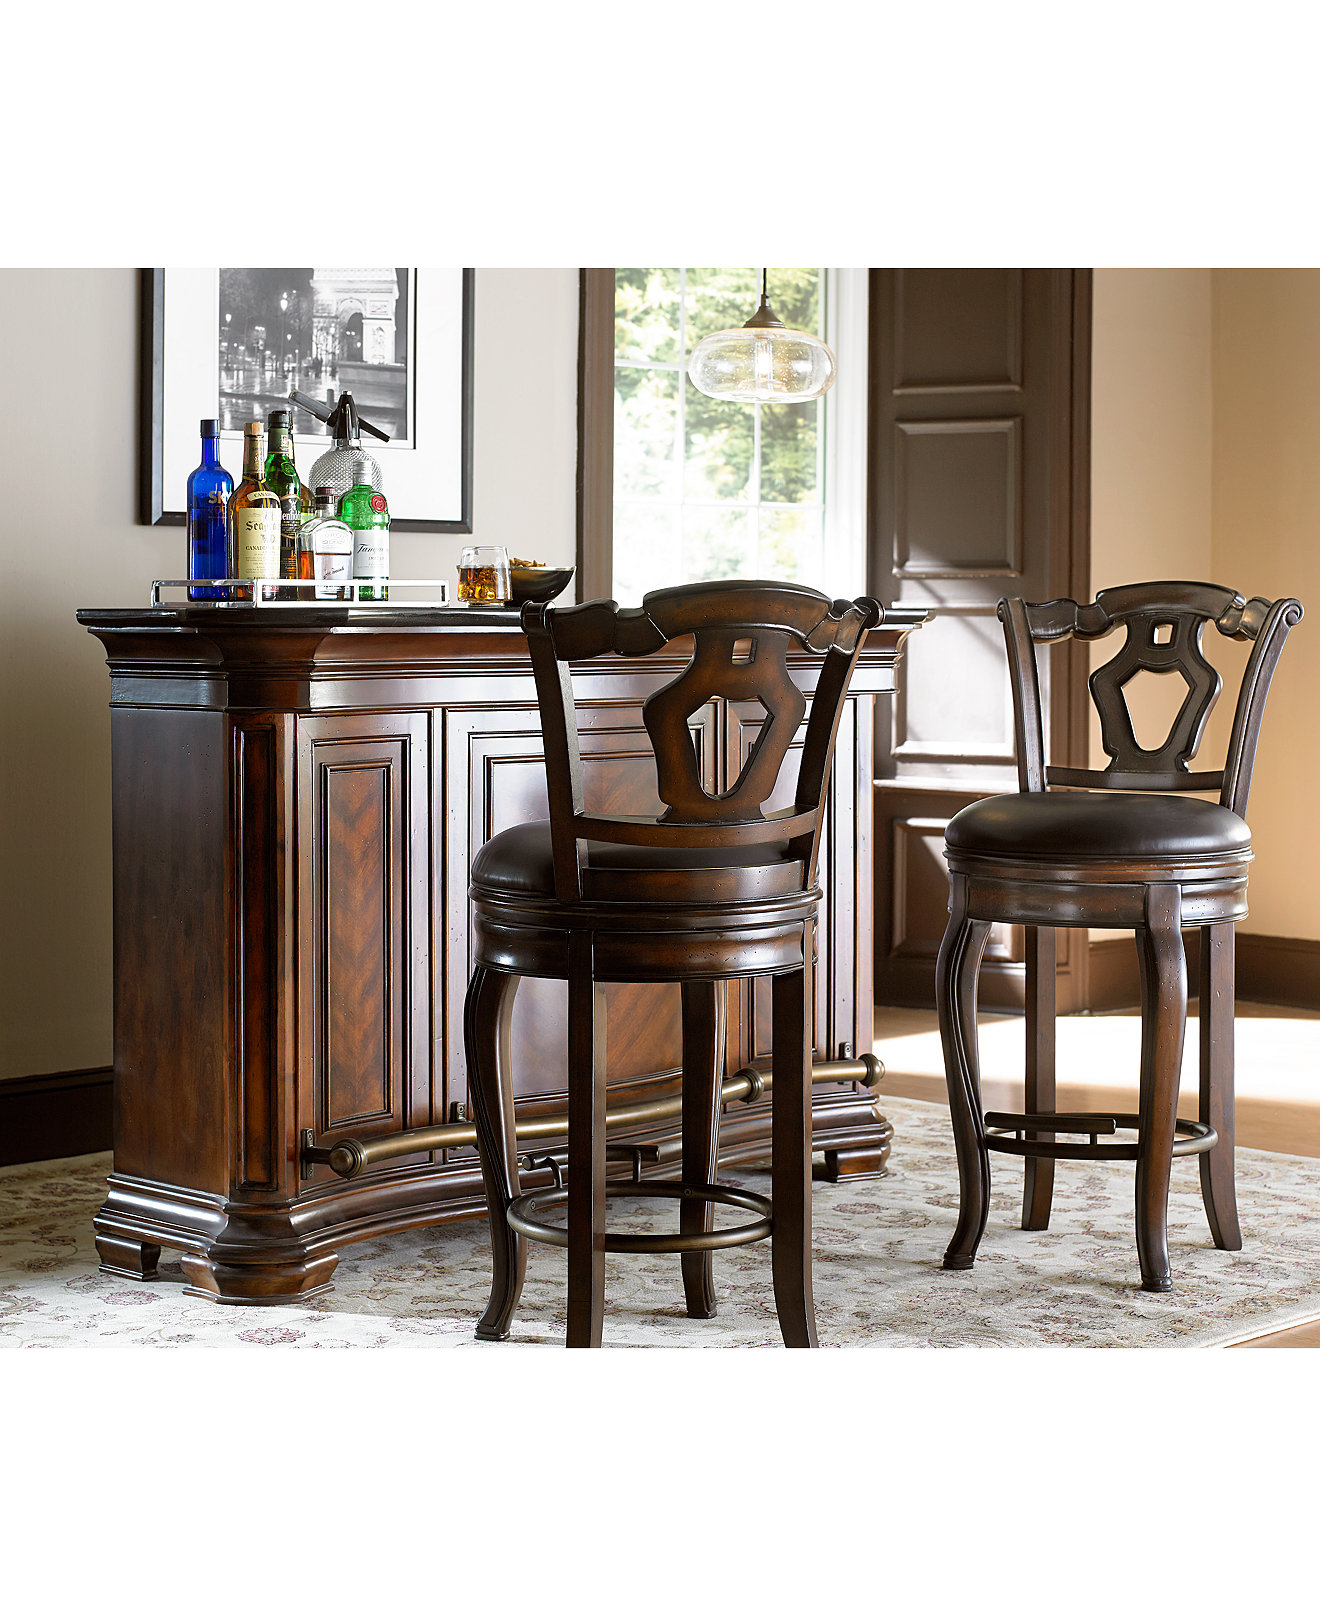 Toscano Home Bar Collection. Home Bar Furniture   Macy s